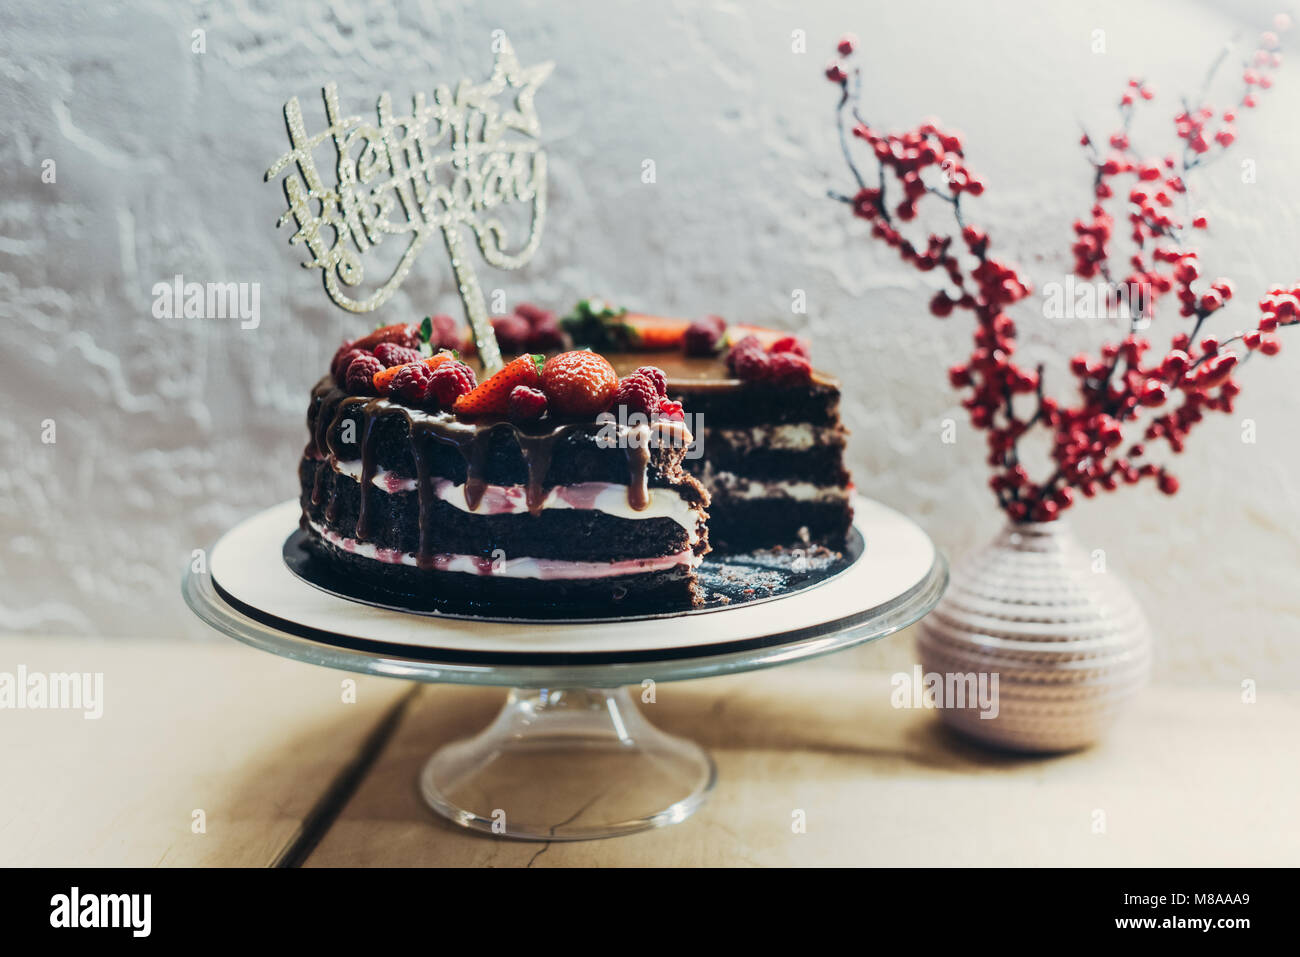 Cake with Happy Birthday sign - Stock Image